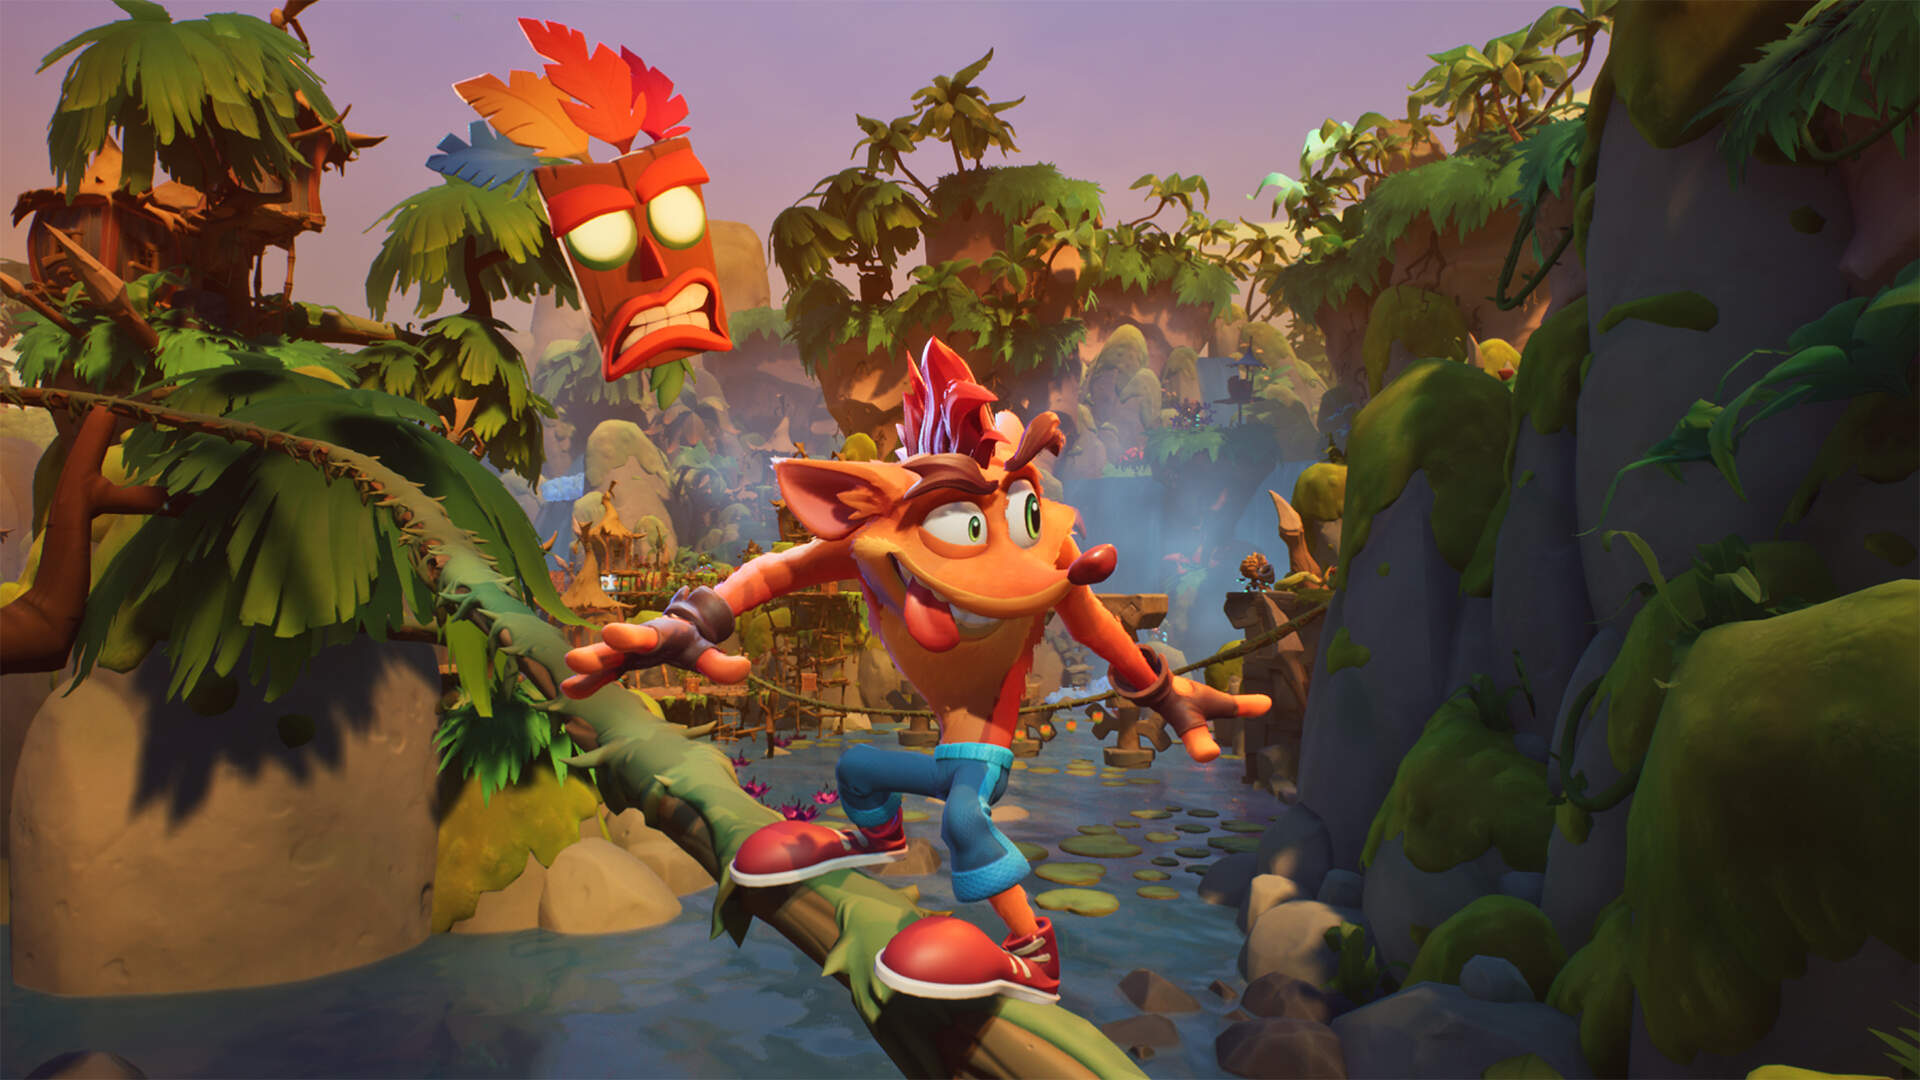 It's About Time for Crash Bandicoot 4: It's About Time